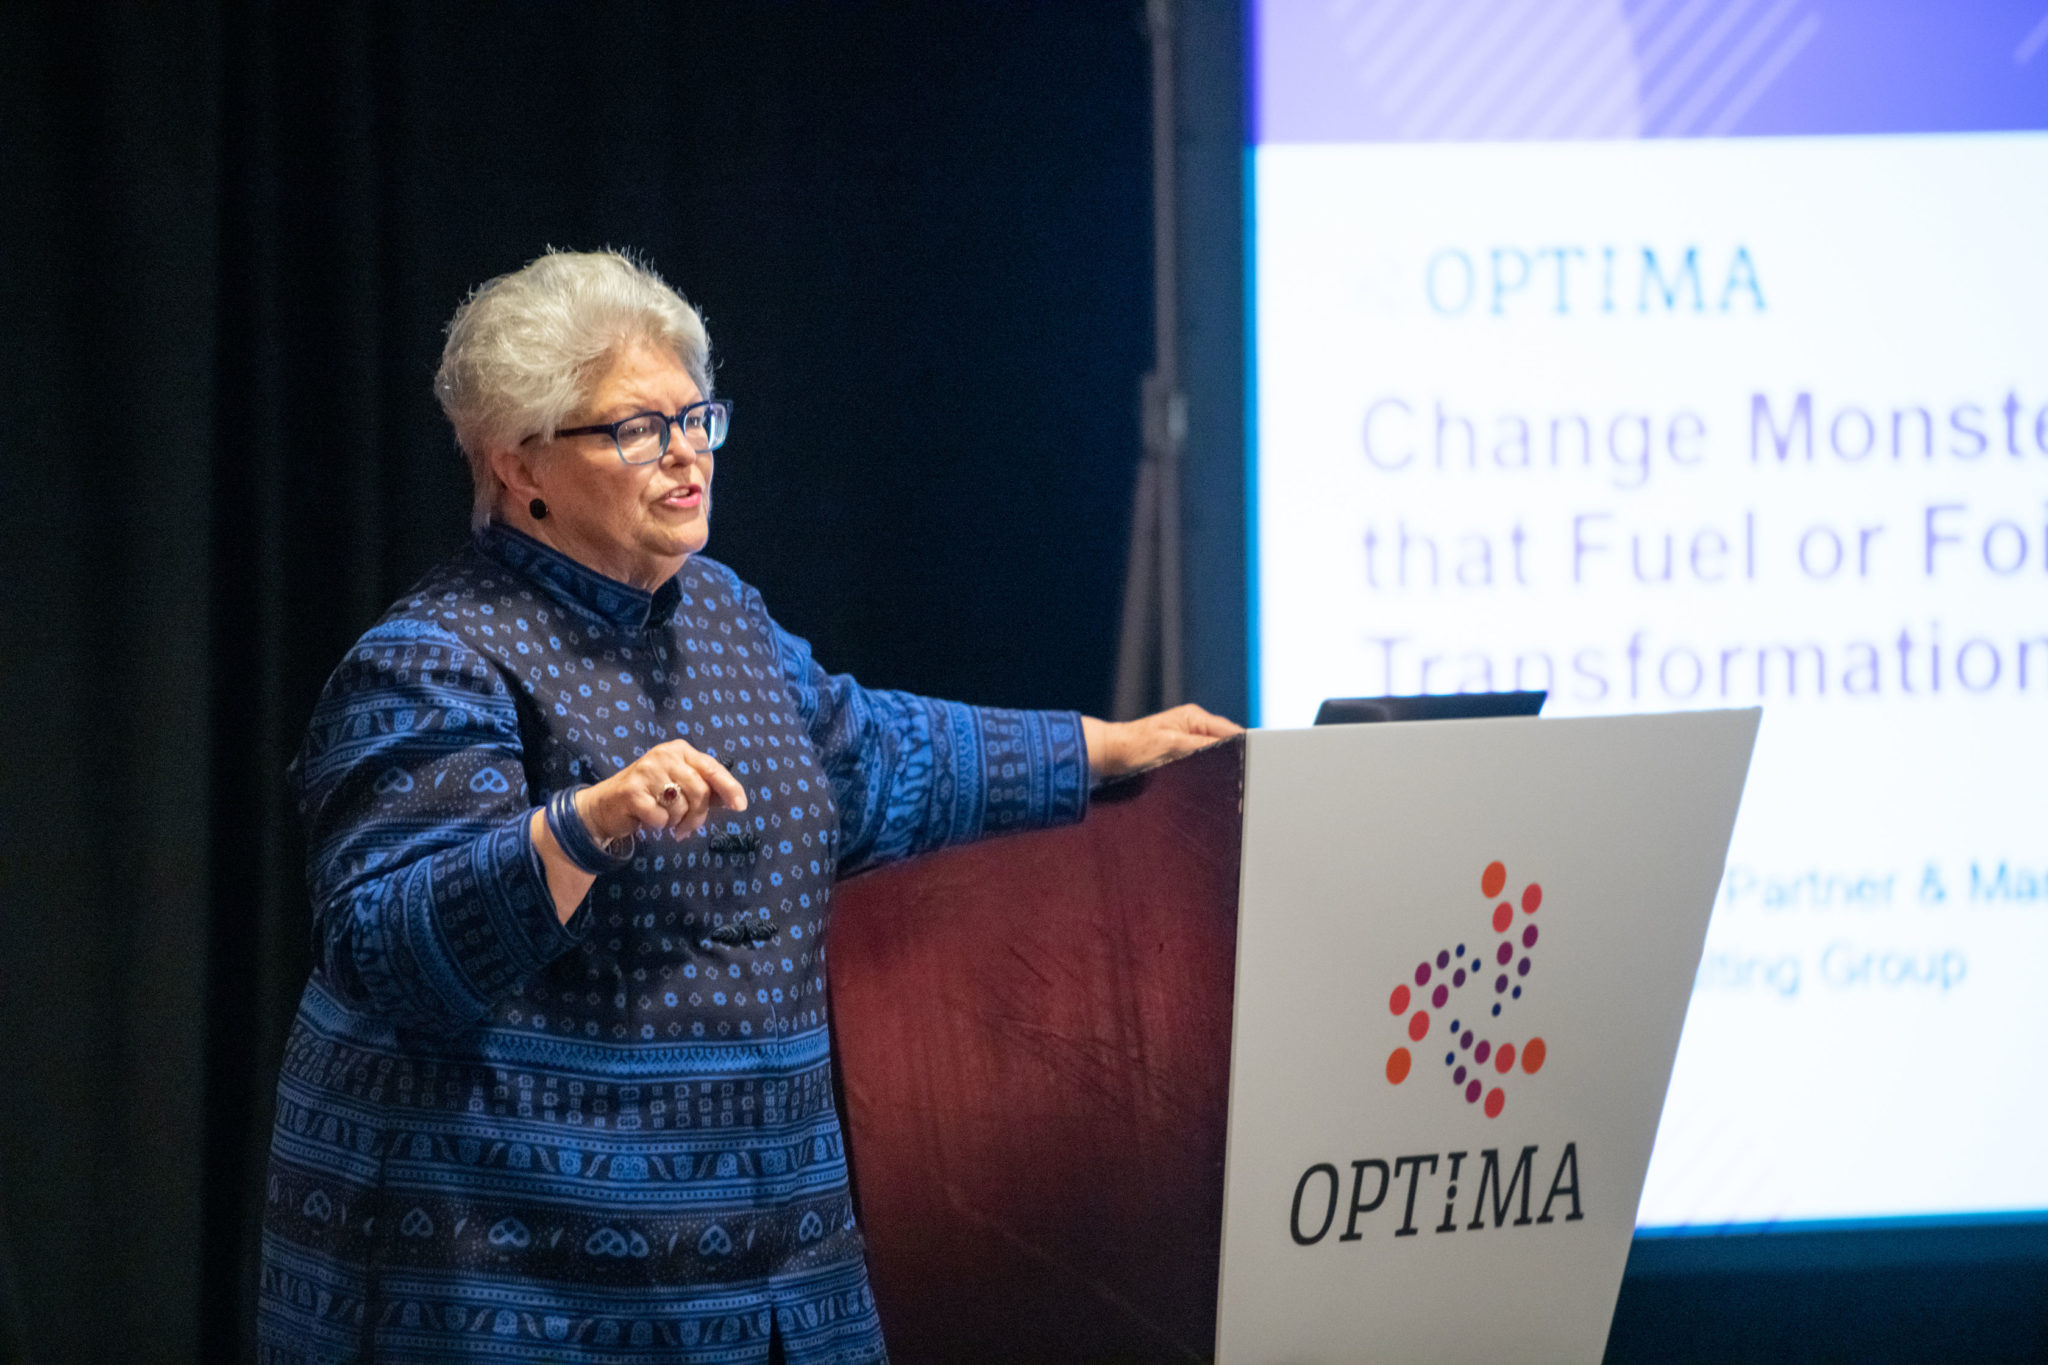 Jeanie Duck talking about change initiatives at OPTIMA 2019